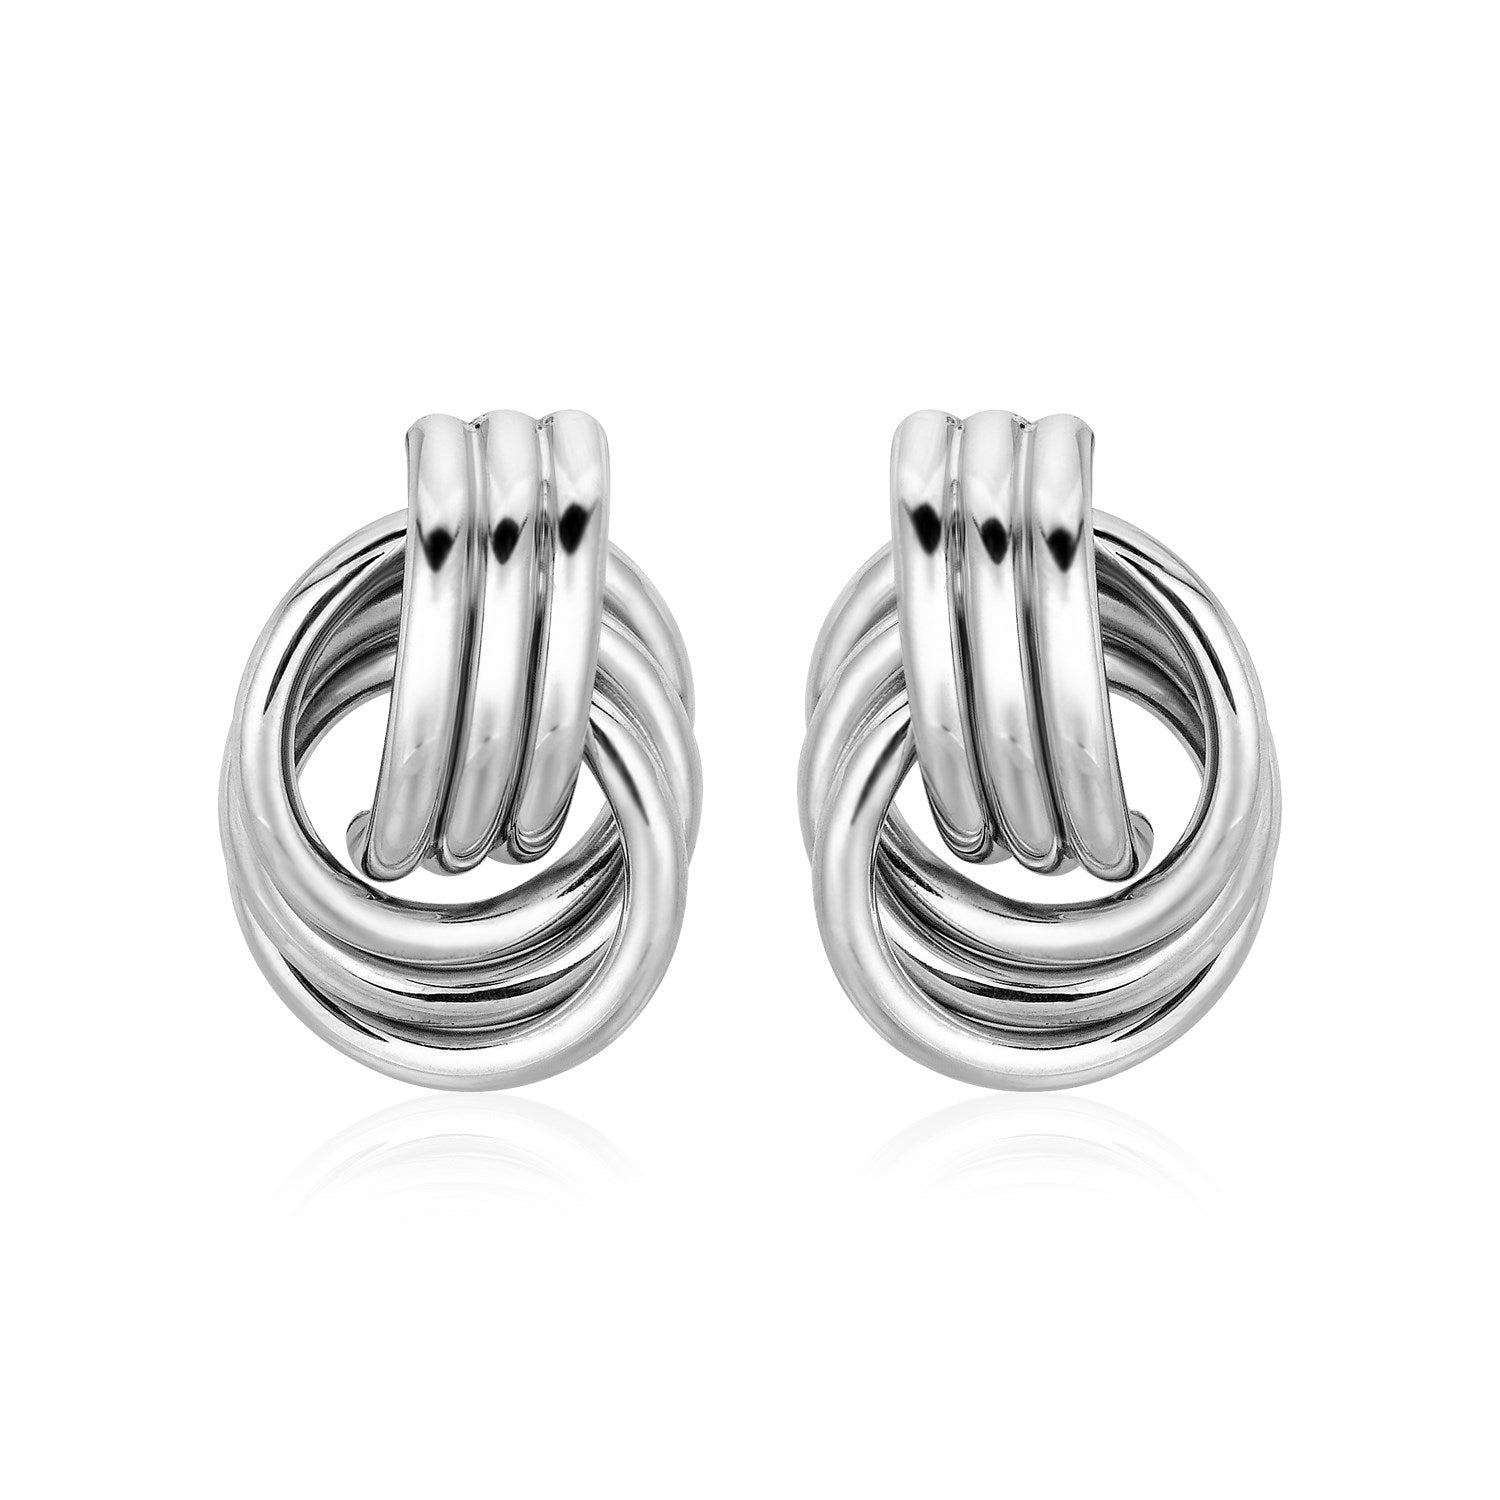 Polished Love Knot Interlocking Rings Earrings